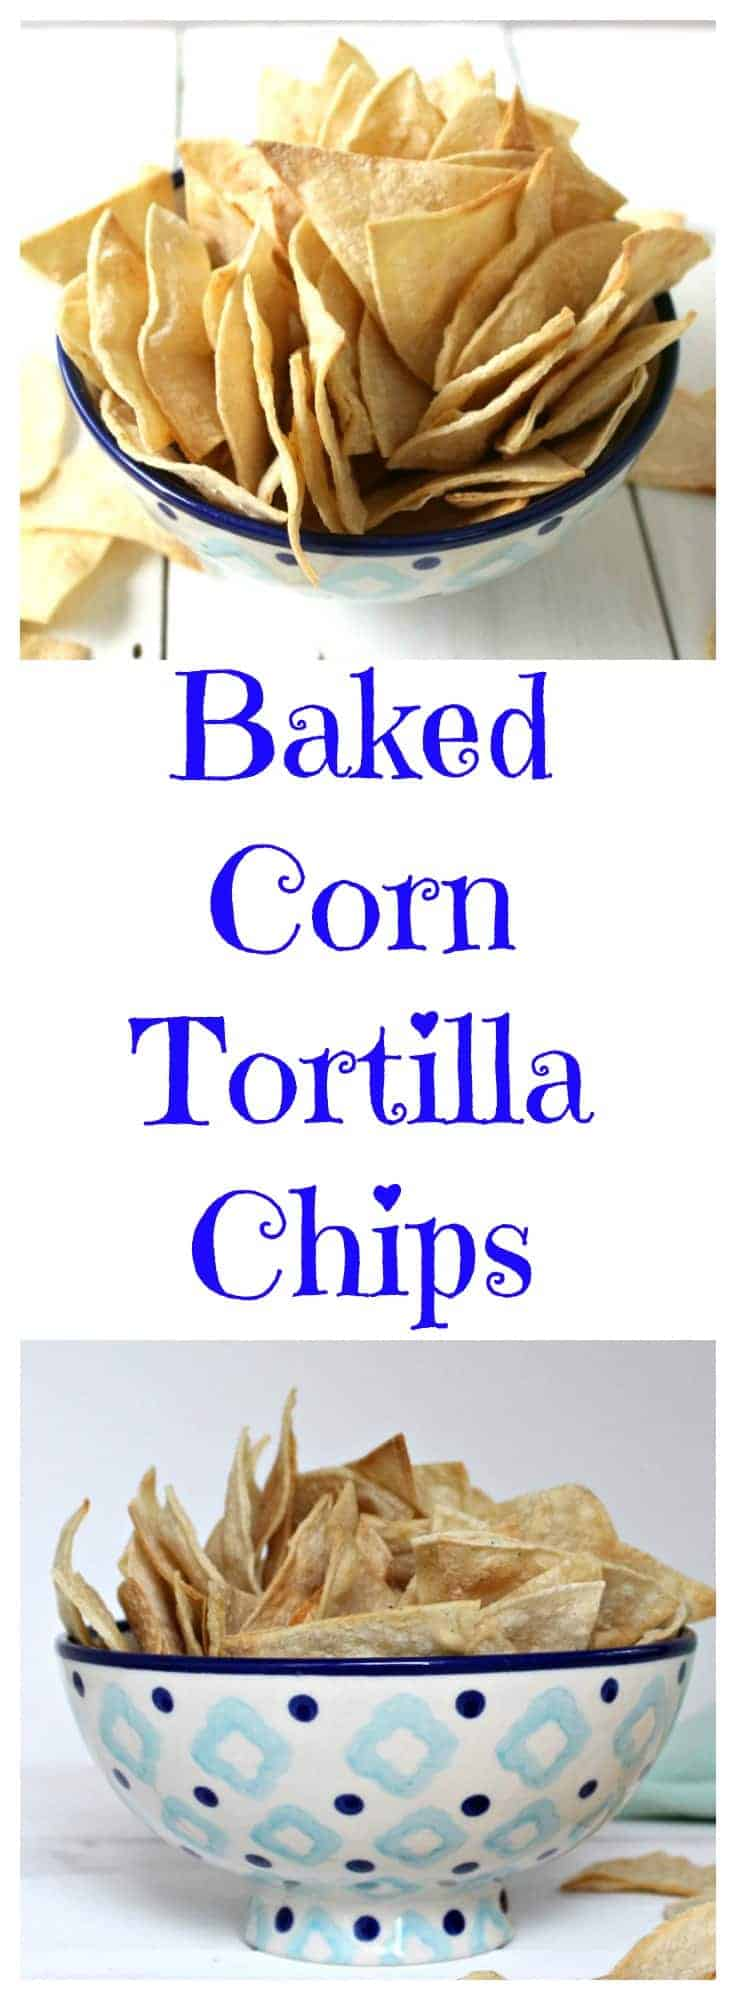 Make Baked Corn Tortilla Chips right in your own kitchen. These delicious crunchy chips are perfect for dipping or eating by themselves. #chips #cornchips #healthy #healthysnack #gameday